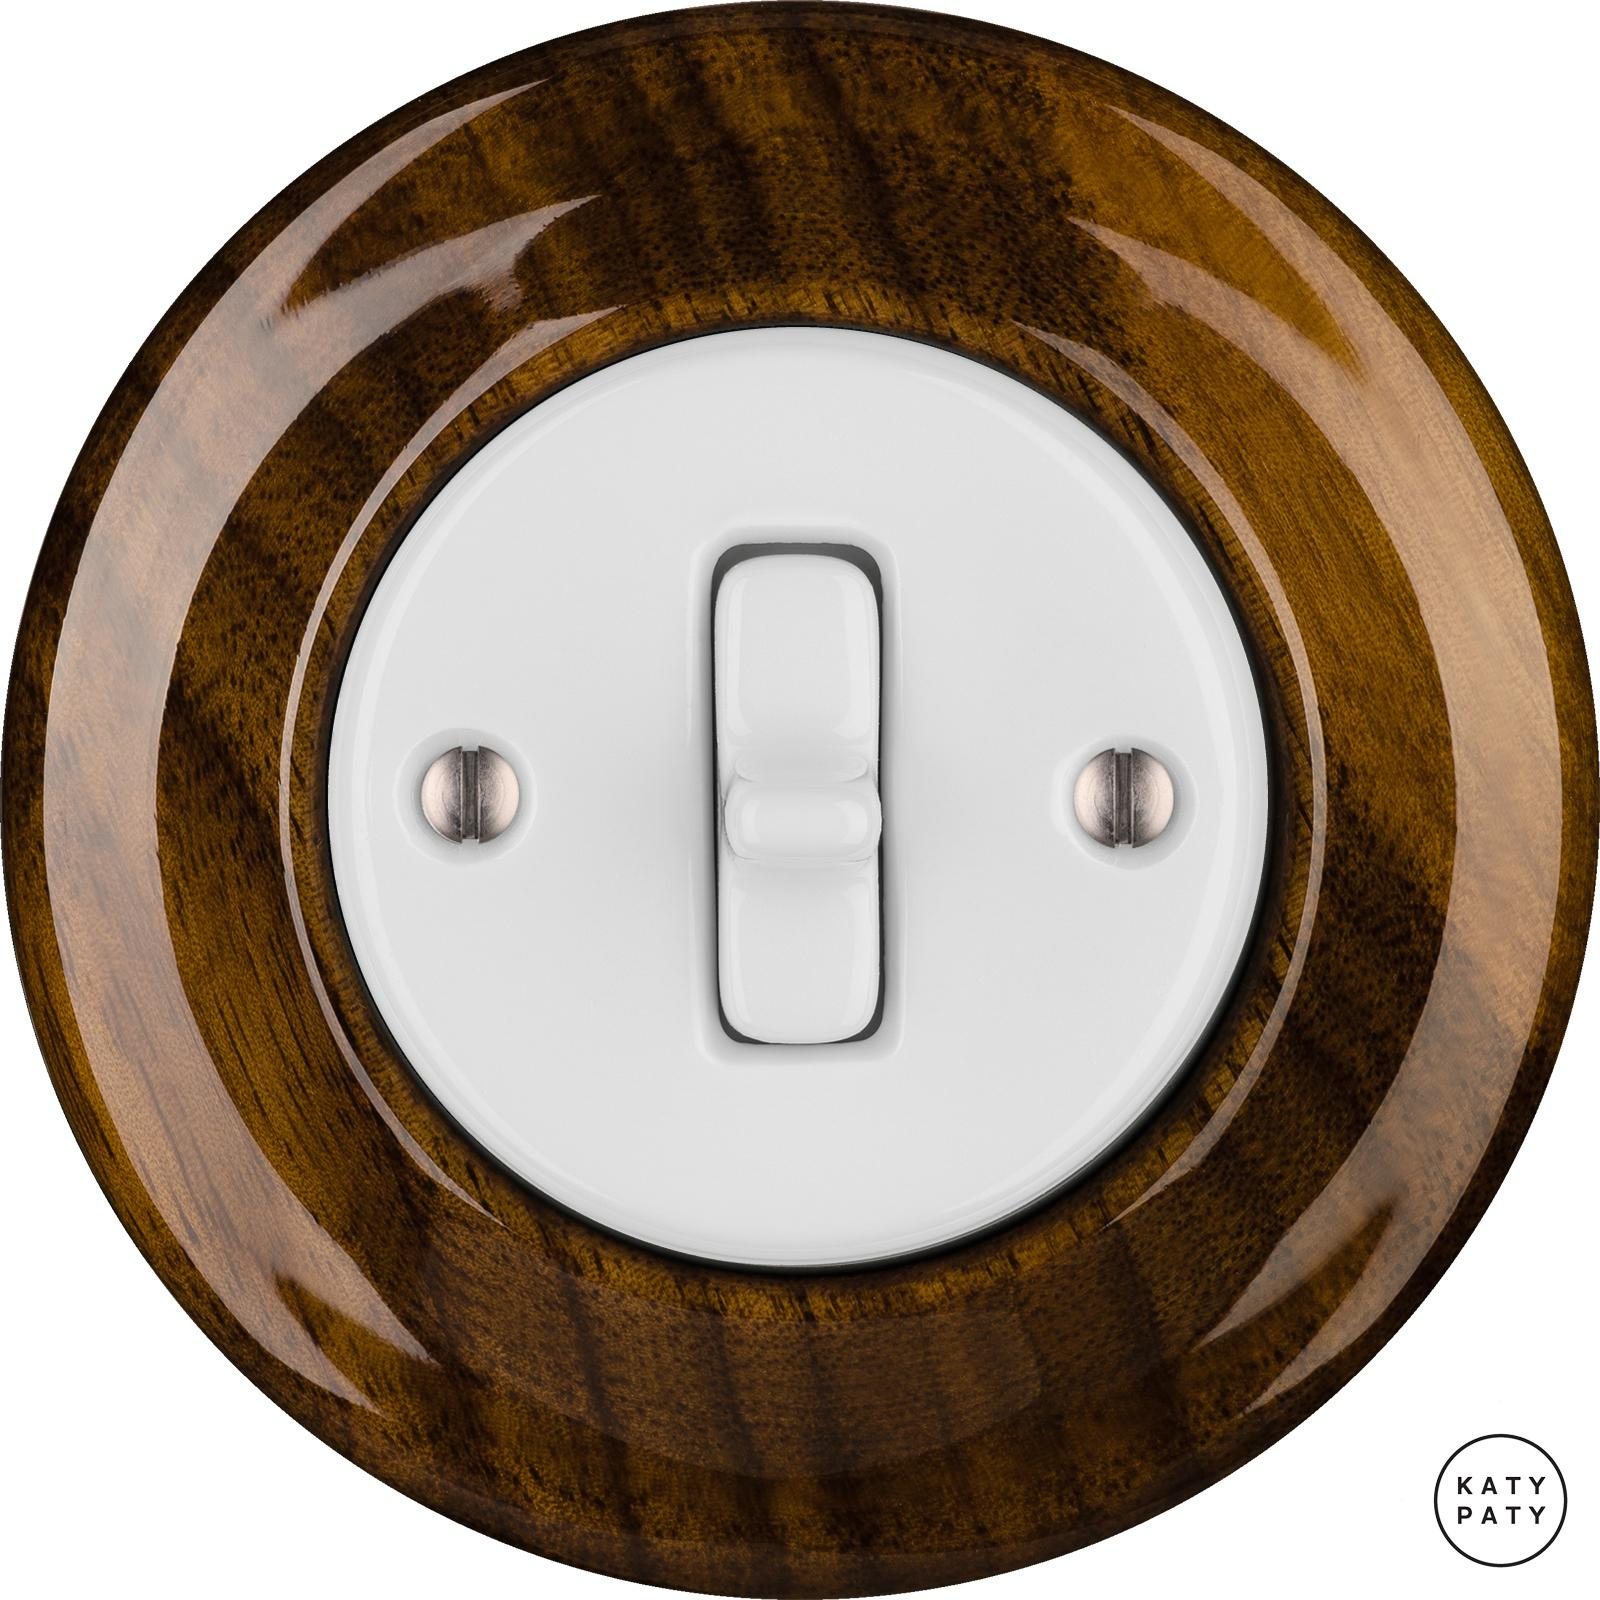 Porcelain Toggle switches - 1 gang ()  - NUCLEUS | Katy Paty